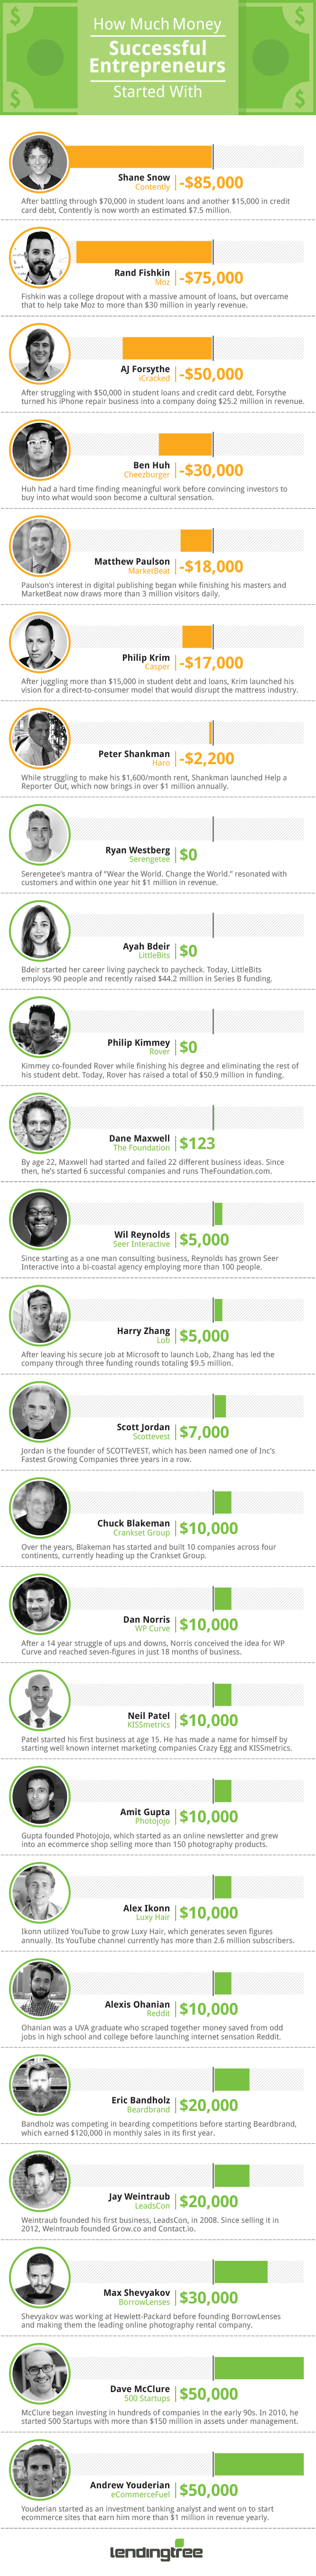 entrepreneurs who started with almost nothing